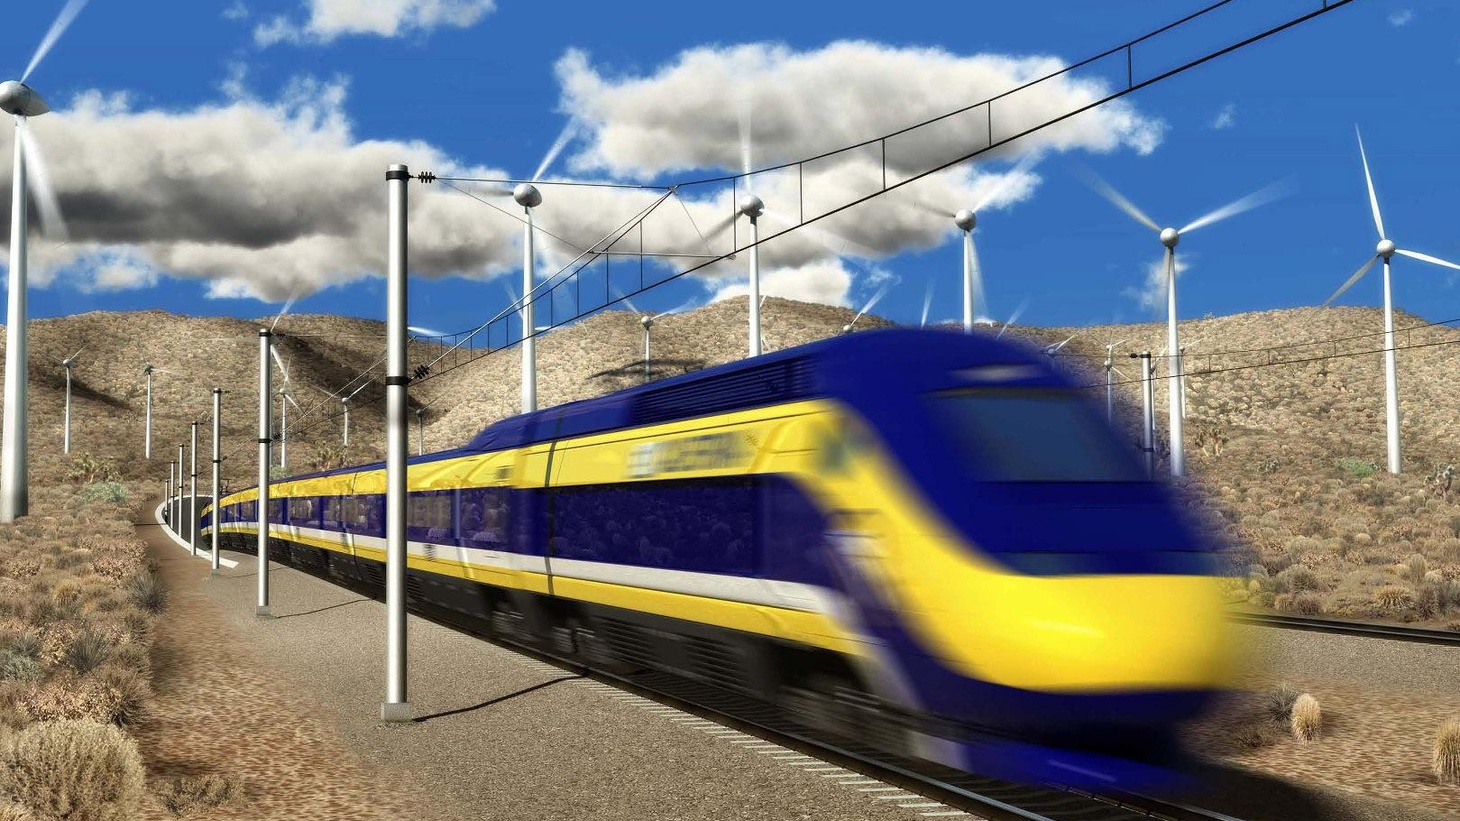 There are new questions about the proposal to help fund high-speed rail between LA and San Francisco. But Governor Brown says a bullet train is doable.